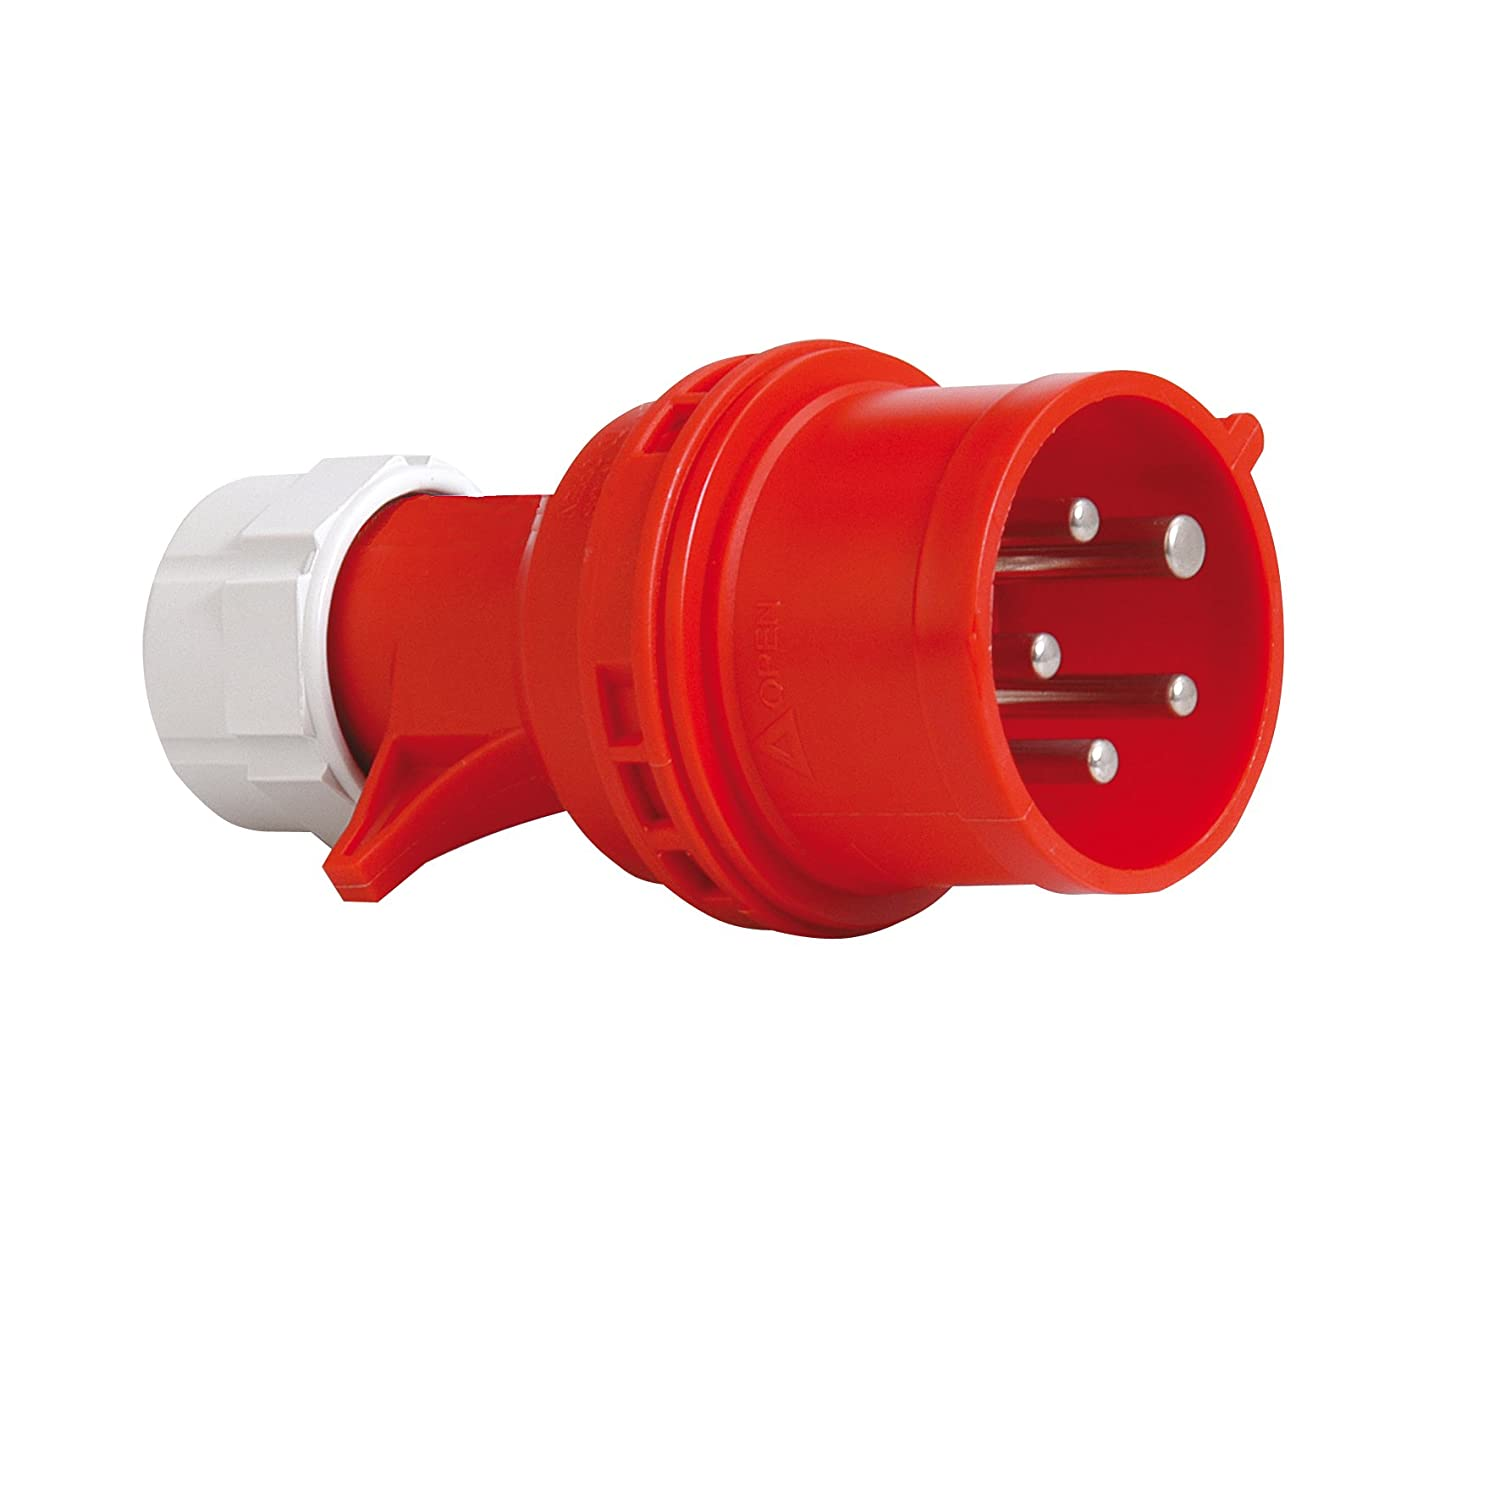 PCE 40829L CEE Phase Change Plug 16 A Red